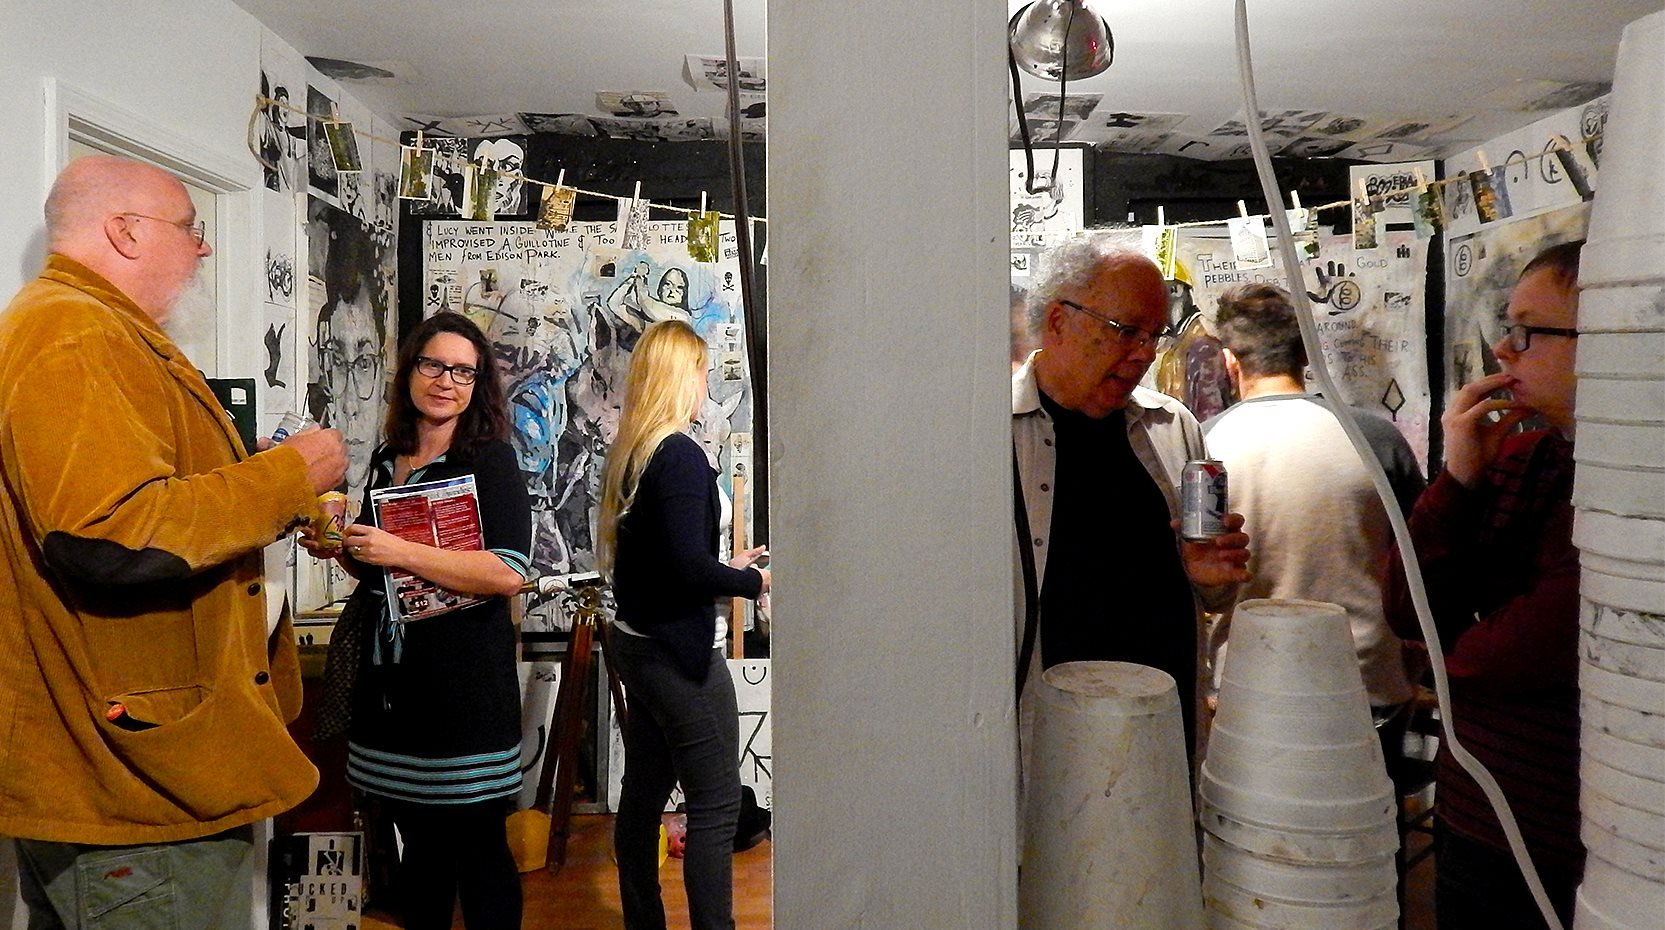 Hard Times Art Show II with Richard Reilly, Sarah Hermes Griesbach, Buzz Spector, at the Dollar Art House (2016).